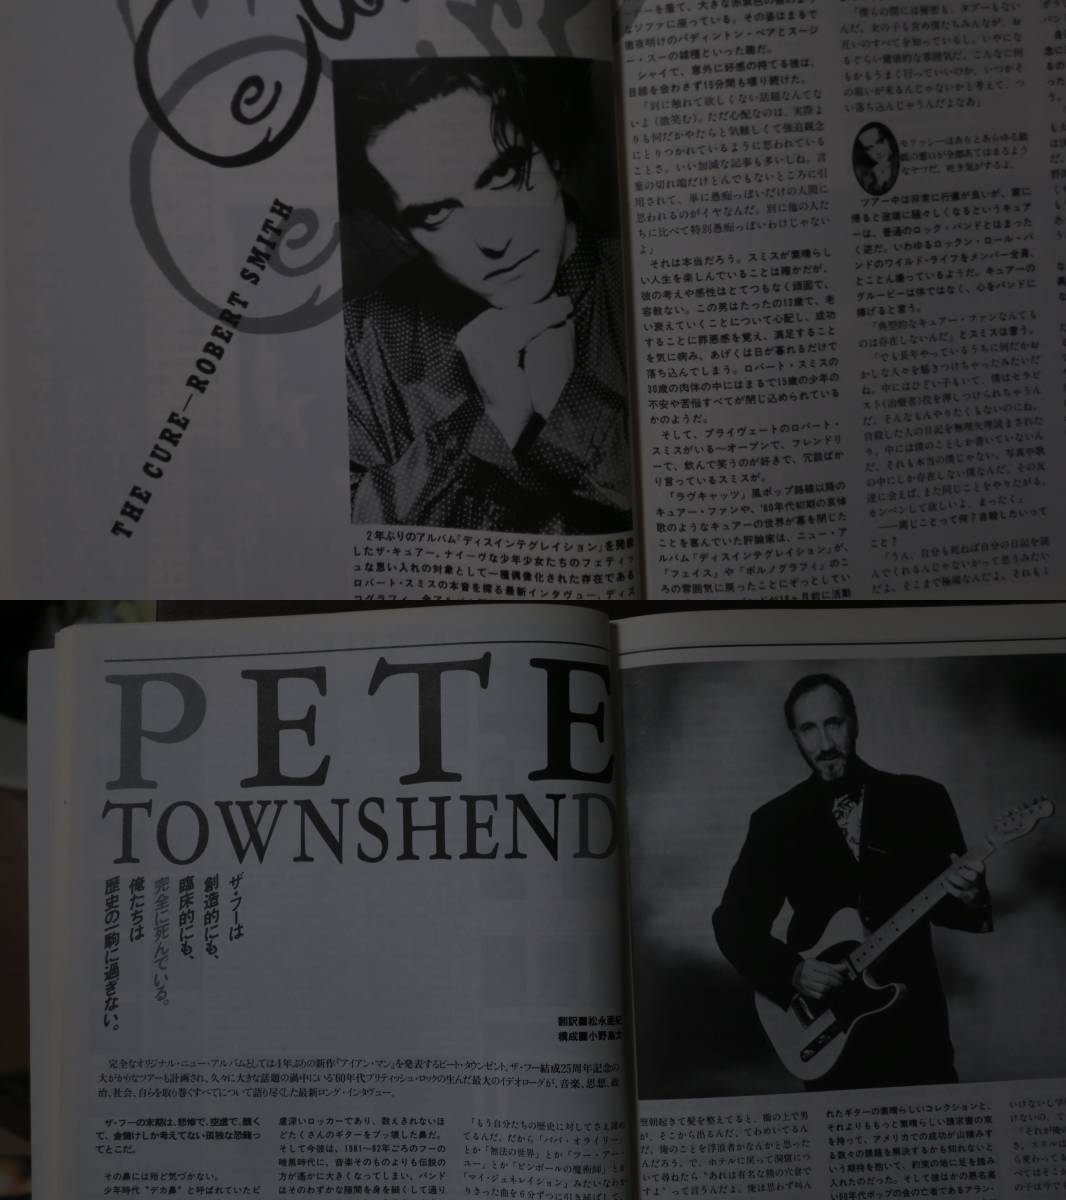 newswave21THE CURE小野島大PETE TOWNSHEND/NICK CAVE/MARK STEWART/THE HOUSE OF LOVE/Guy Chadwick/Robert Smith/THE WHO/POP GROUP/NEU!_画像3